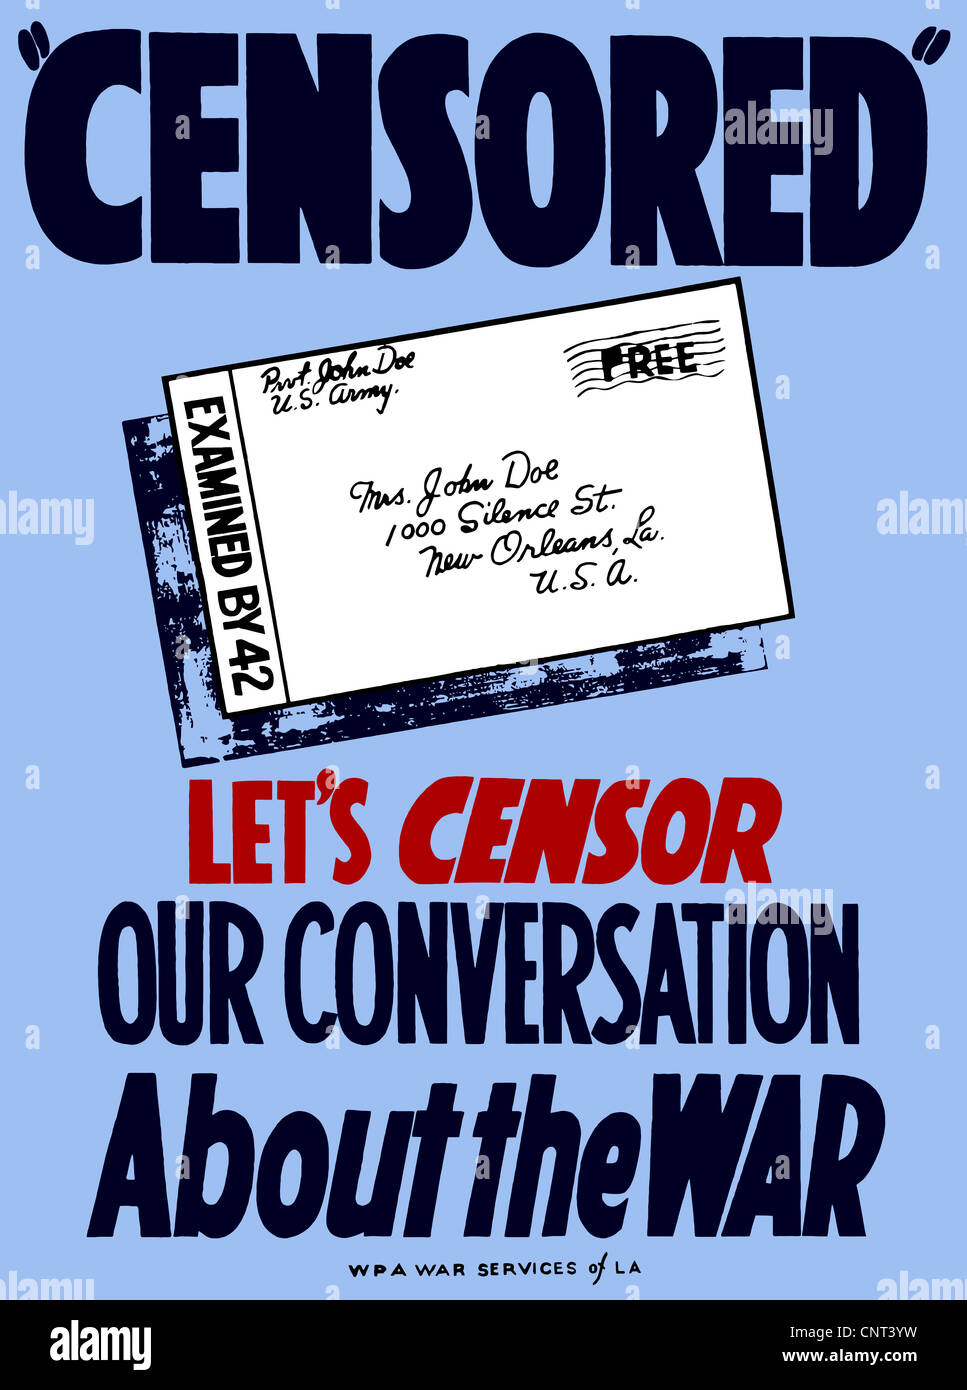 Vintage World War II poster showing a censored letter from Pvt. John Doe to his mother. - Stock Image